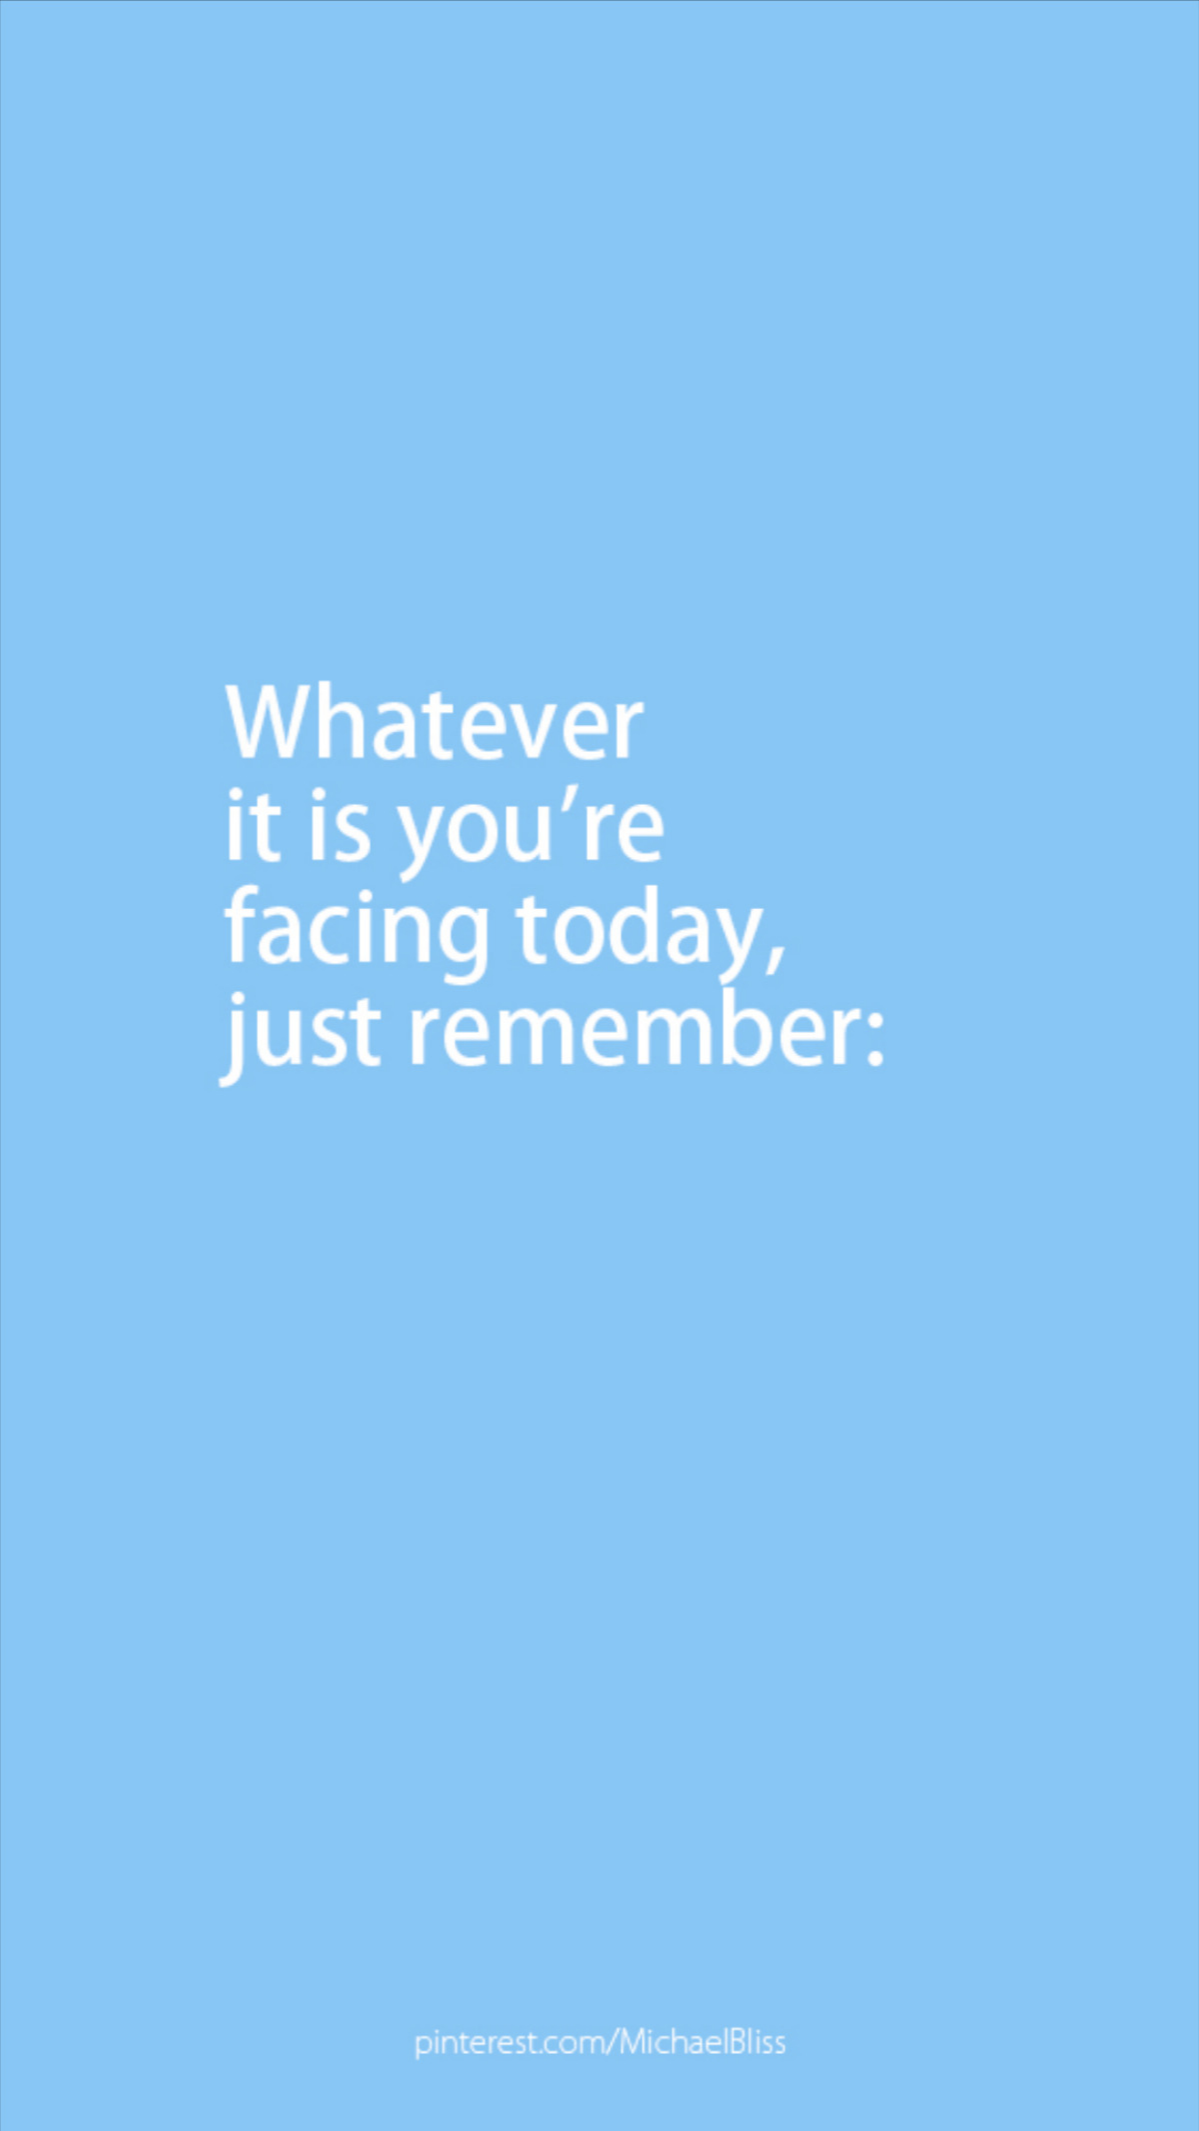 Whatever it is you're facing today, just remember: